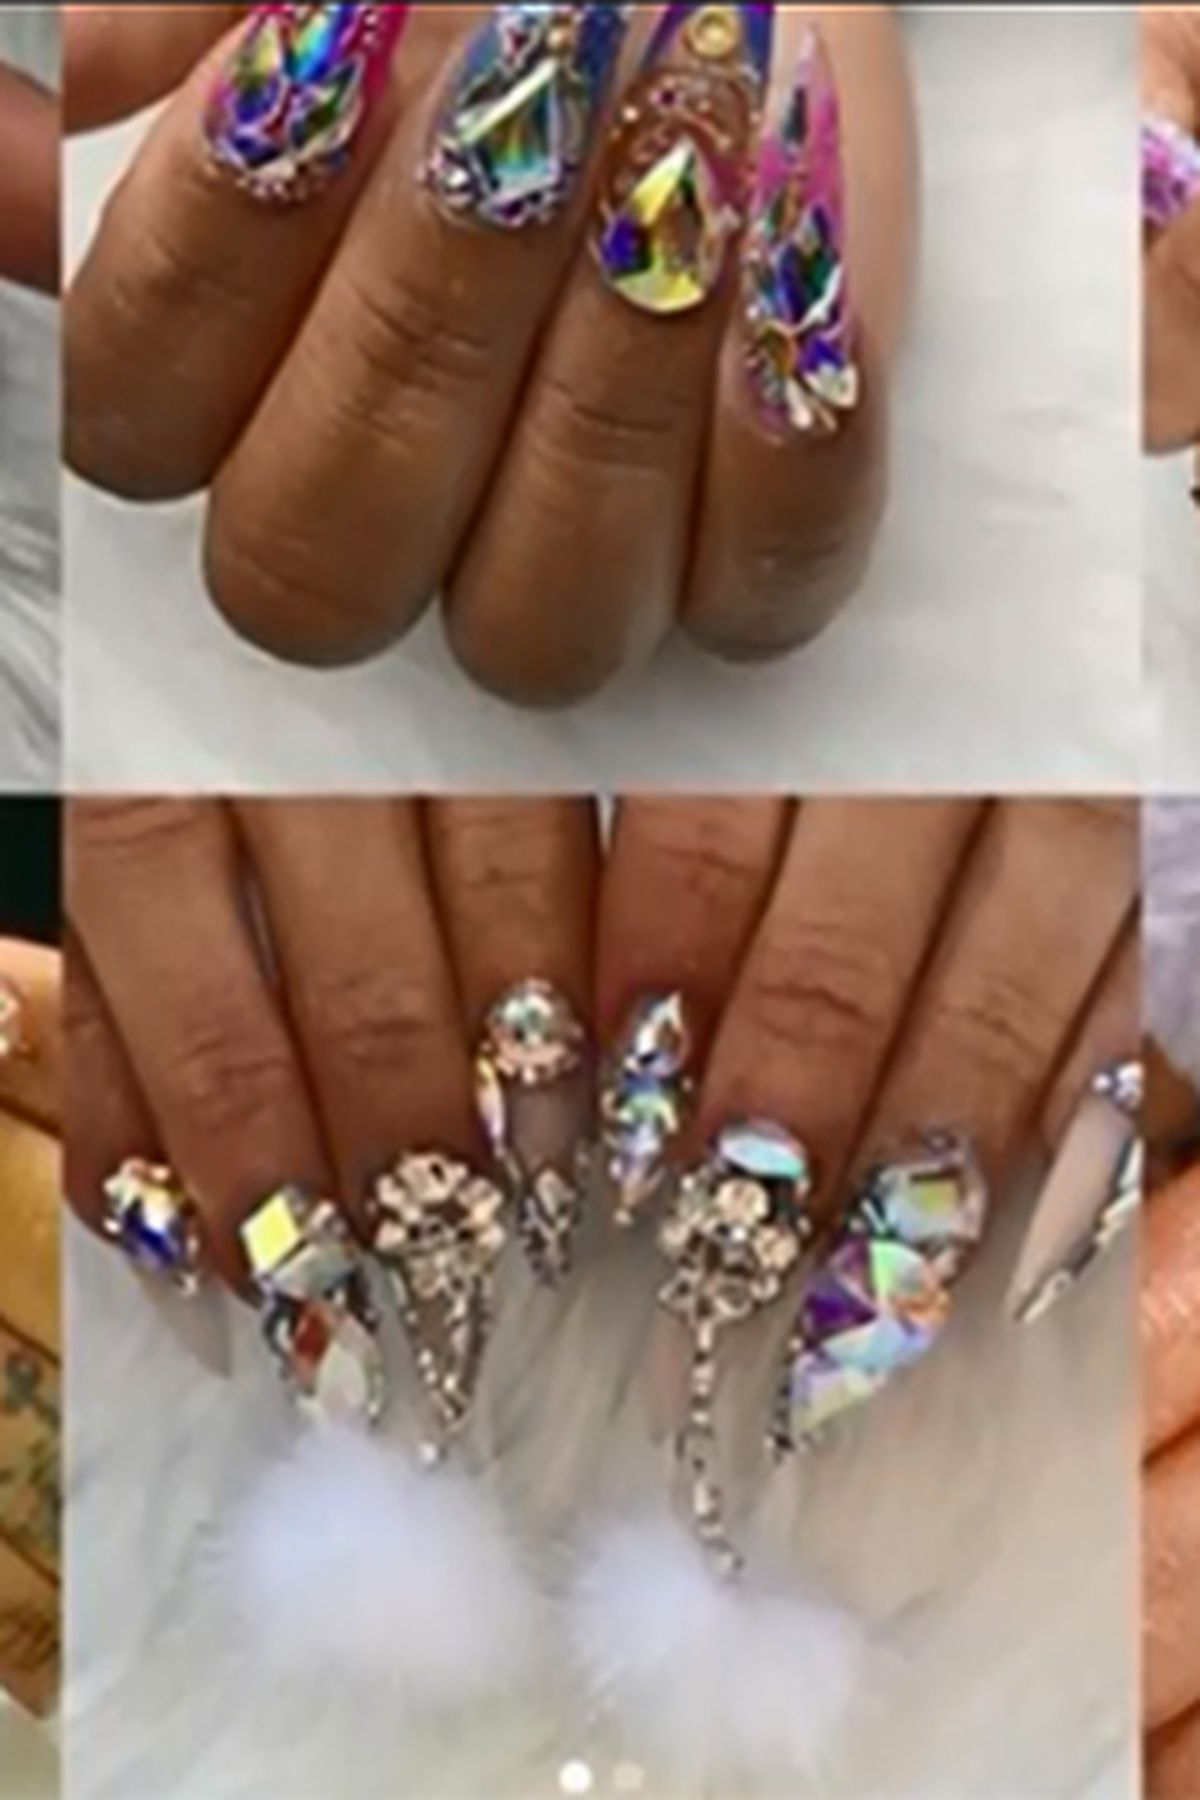 Nail Bling Extravagant On Trend Impractical